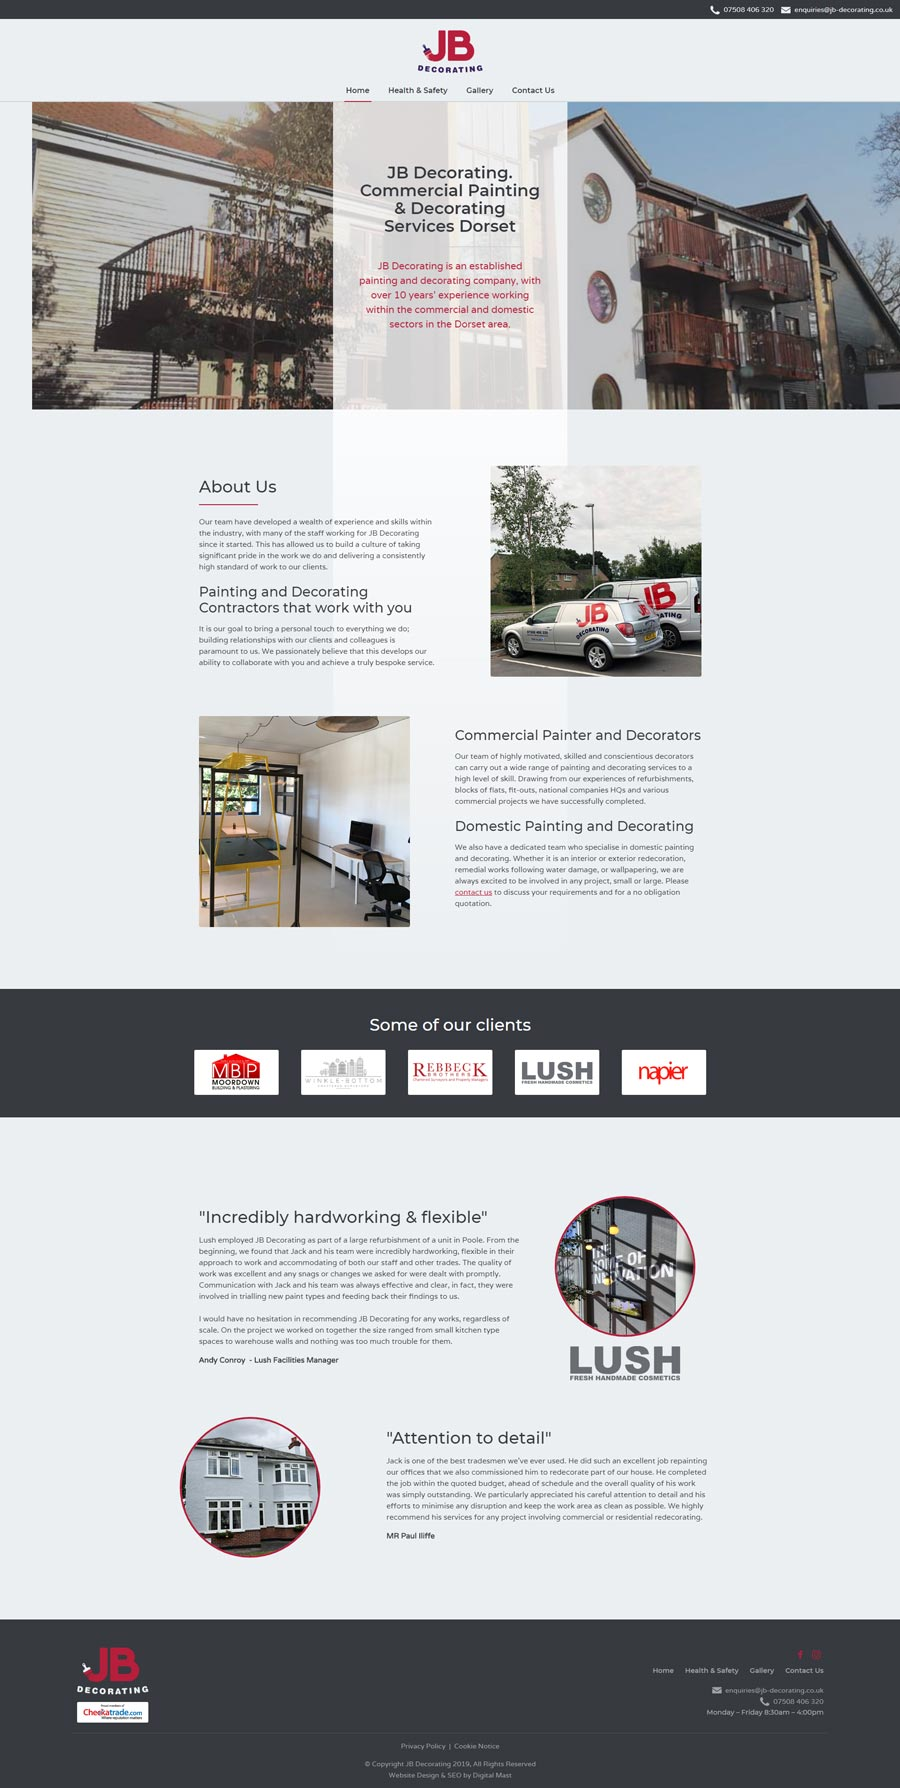 Commercial Painter and Decorator Responsive Web Design